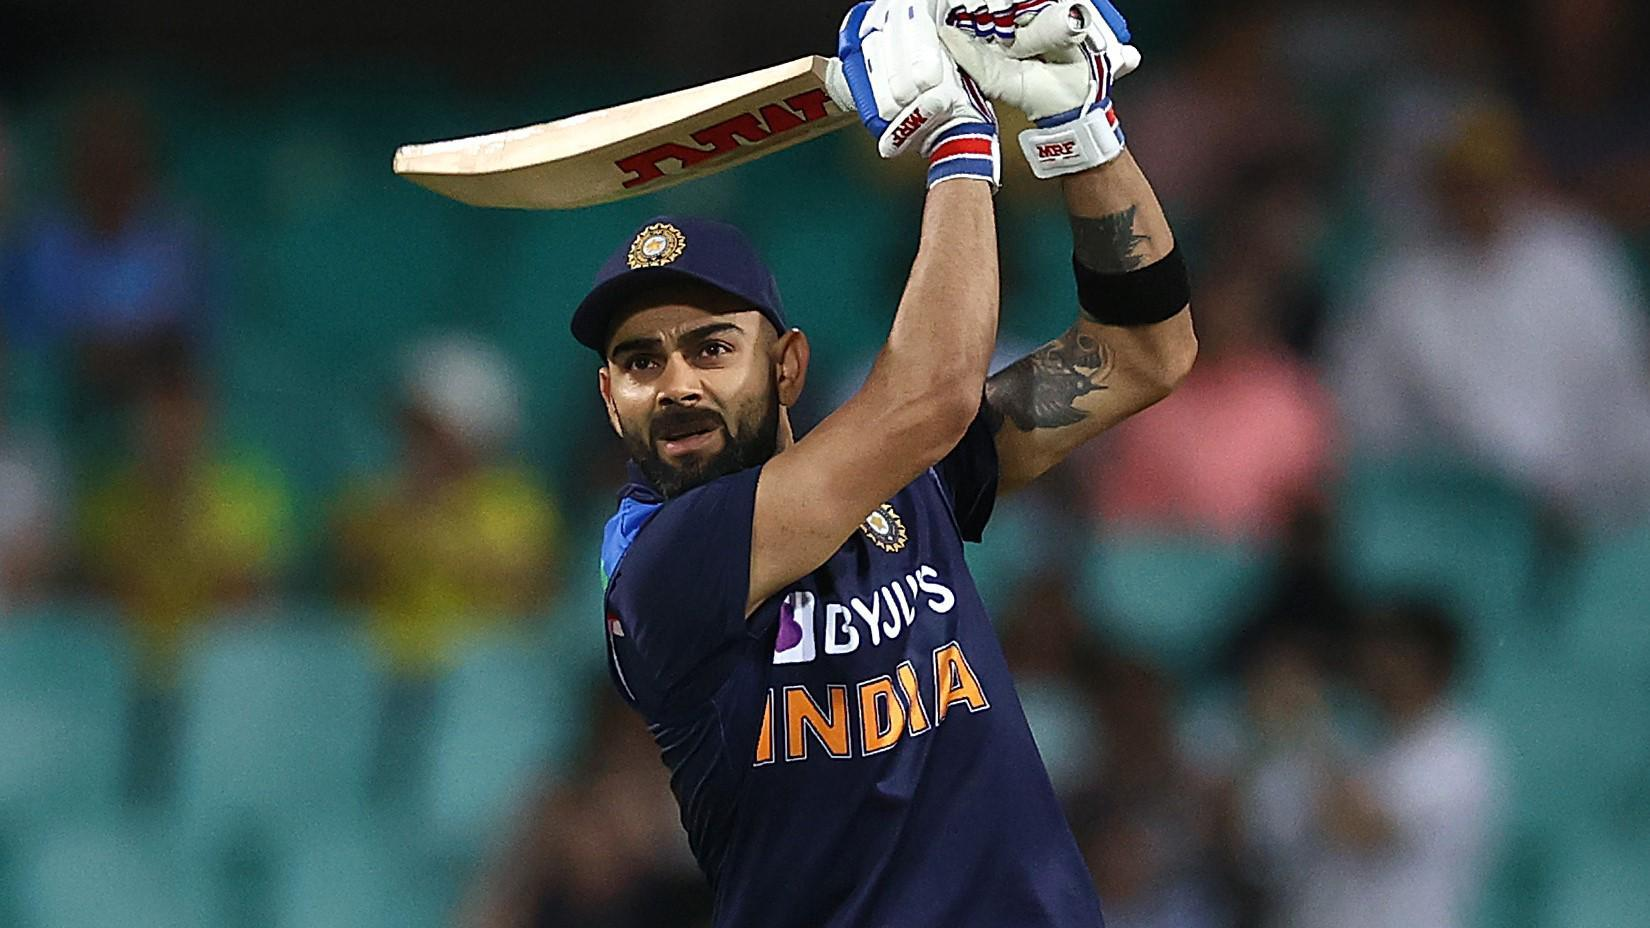 Kohli shines with dazzling 89 before Henriques intervenes